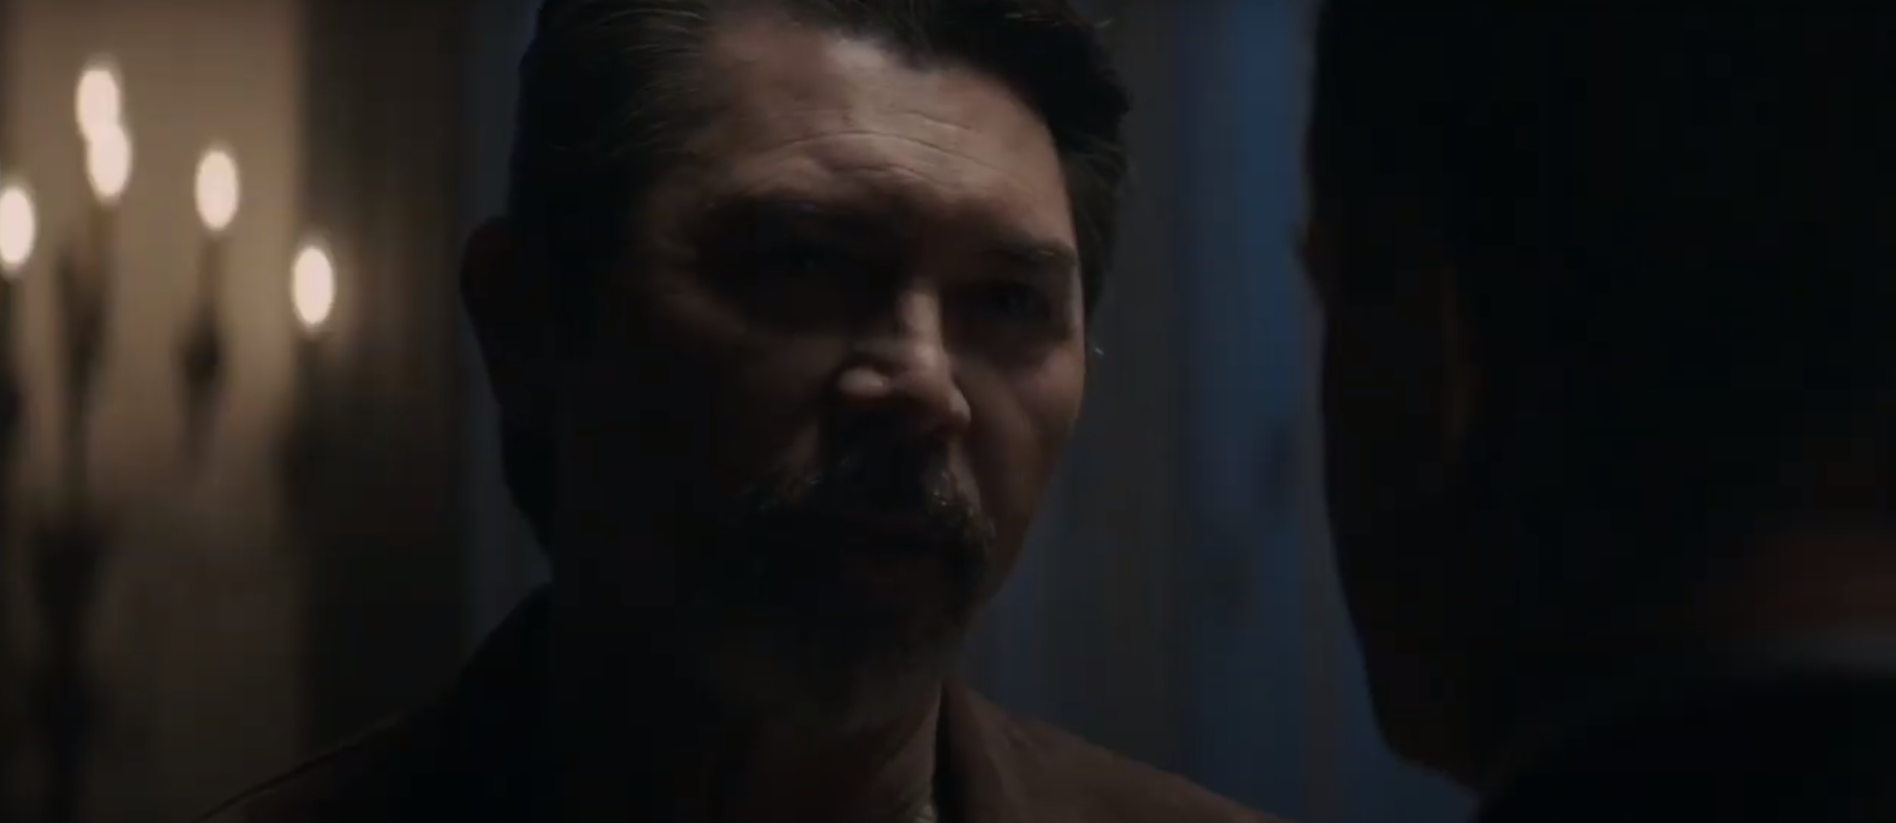 Gil Arroyo, played by Lou Diamond Phillips, in Prodigal Son